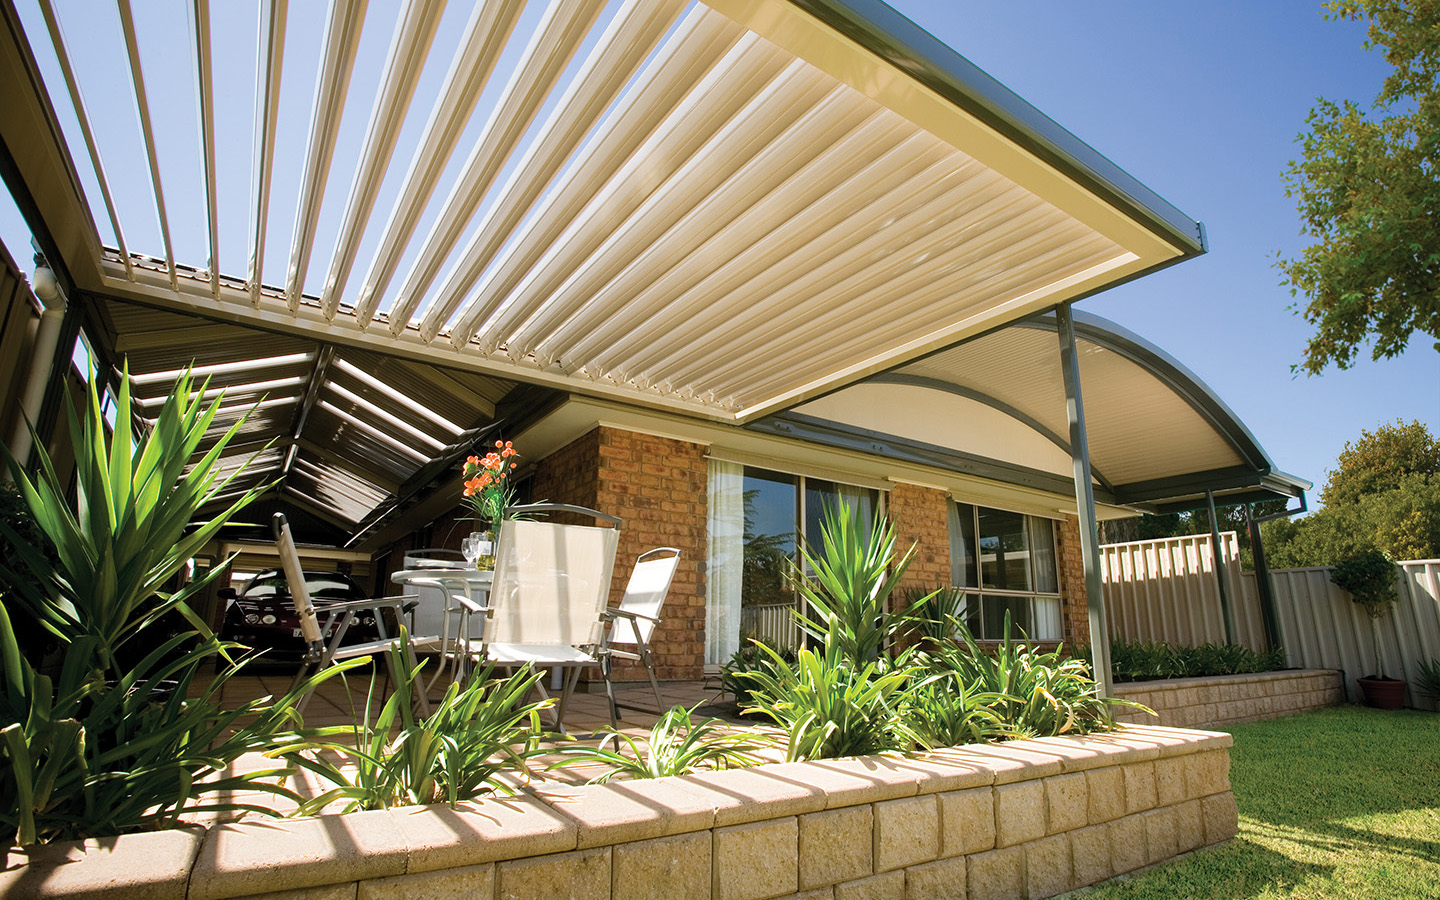 Awning Stratco Outback Sunroof - AbFab